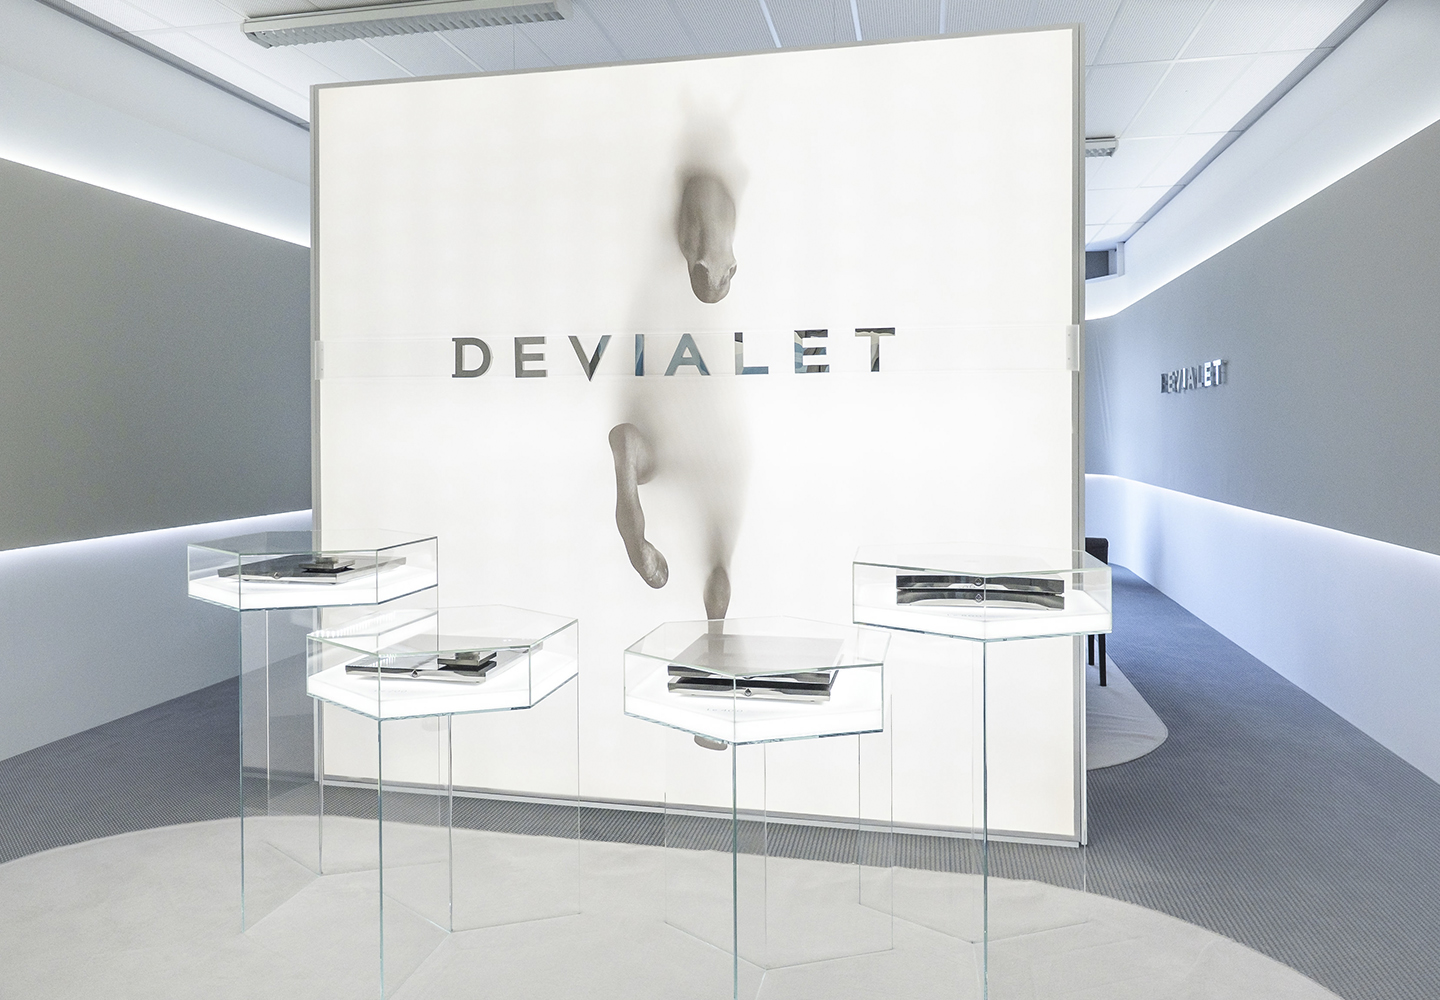 devialet_P H A N T O M_charlienumberfive